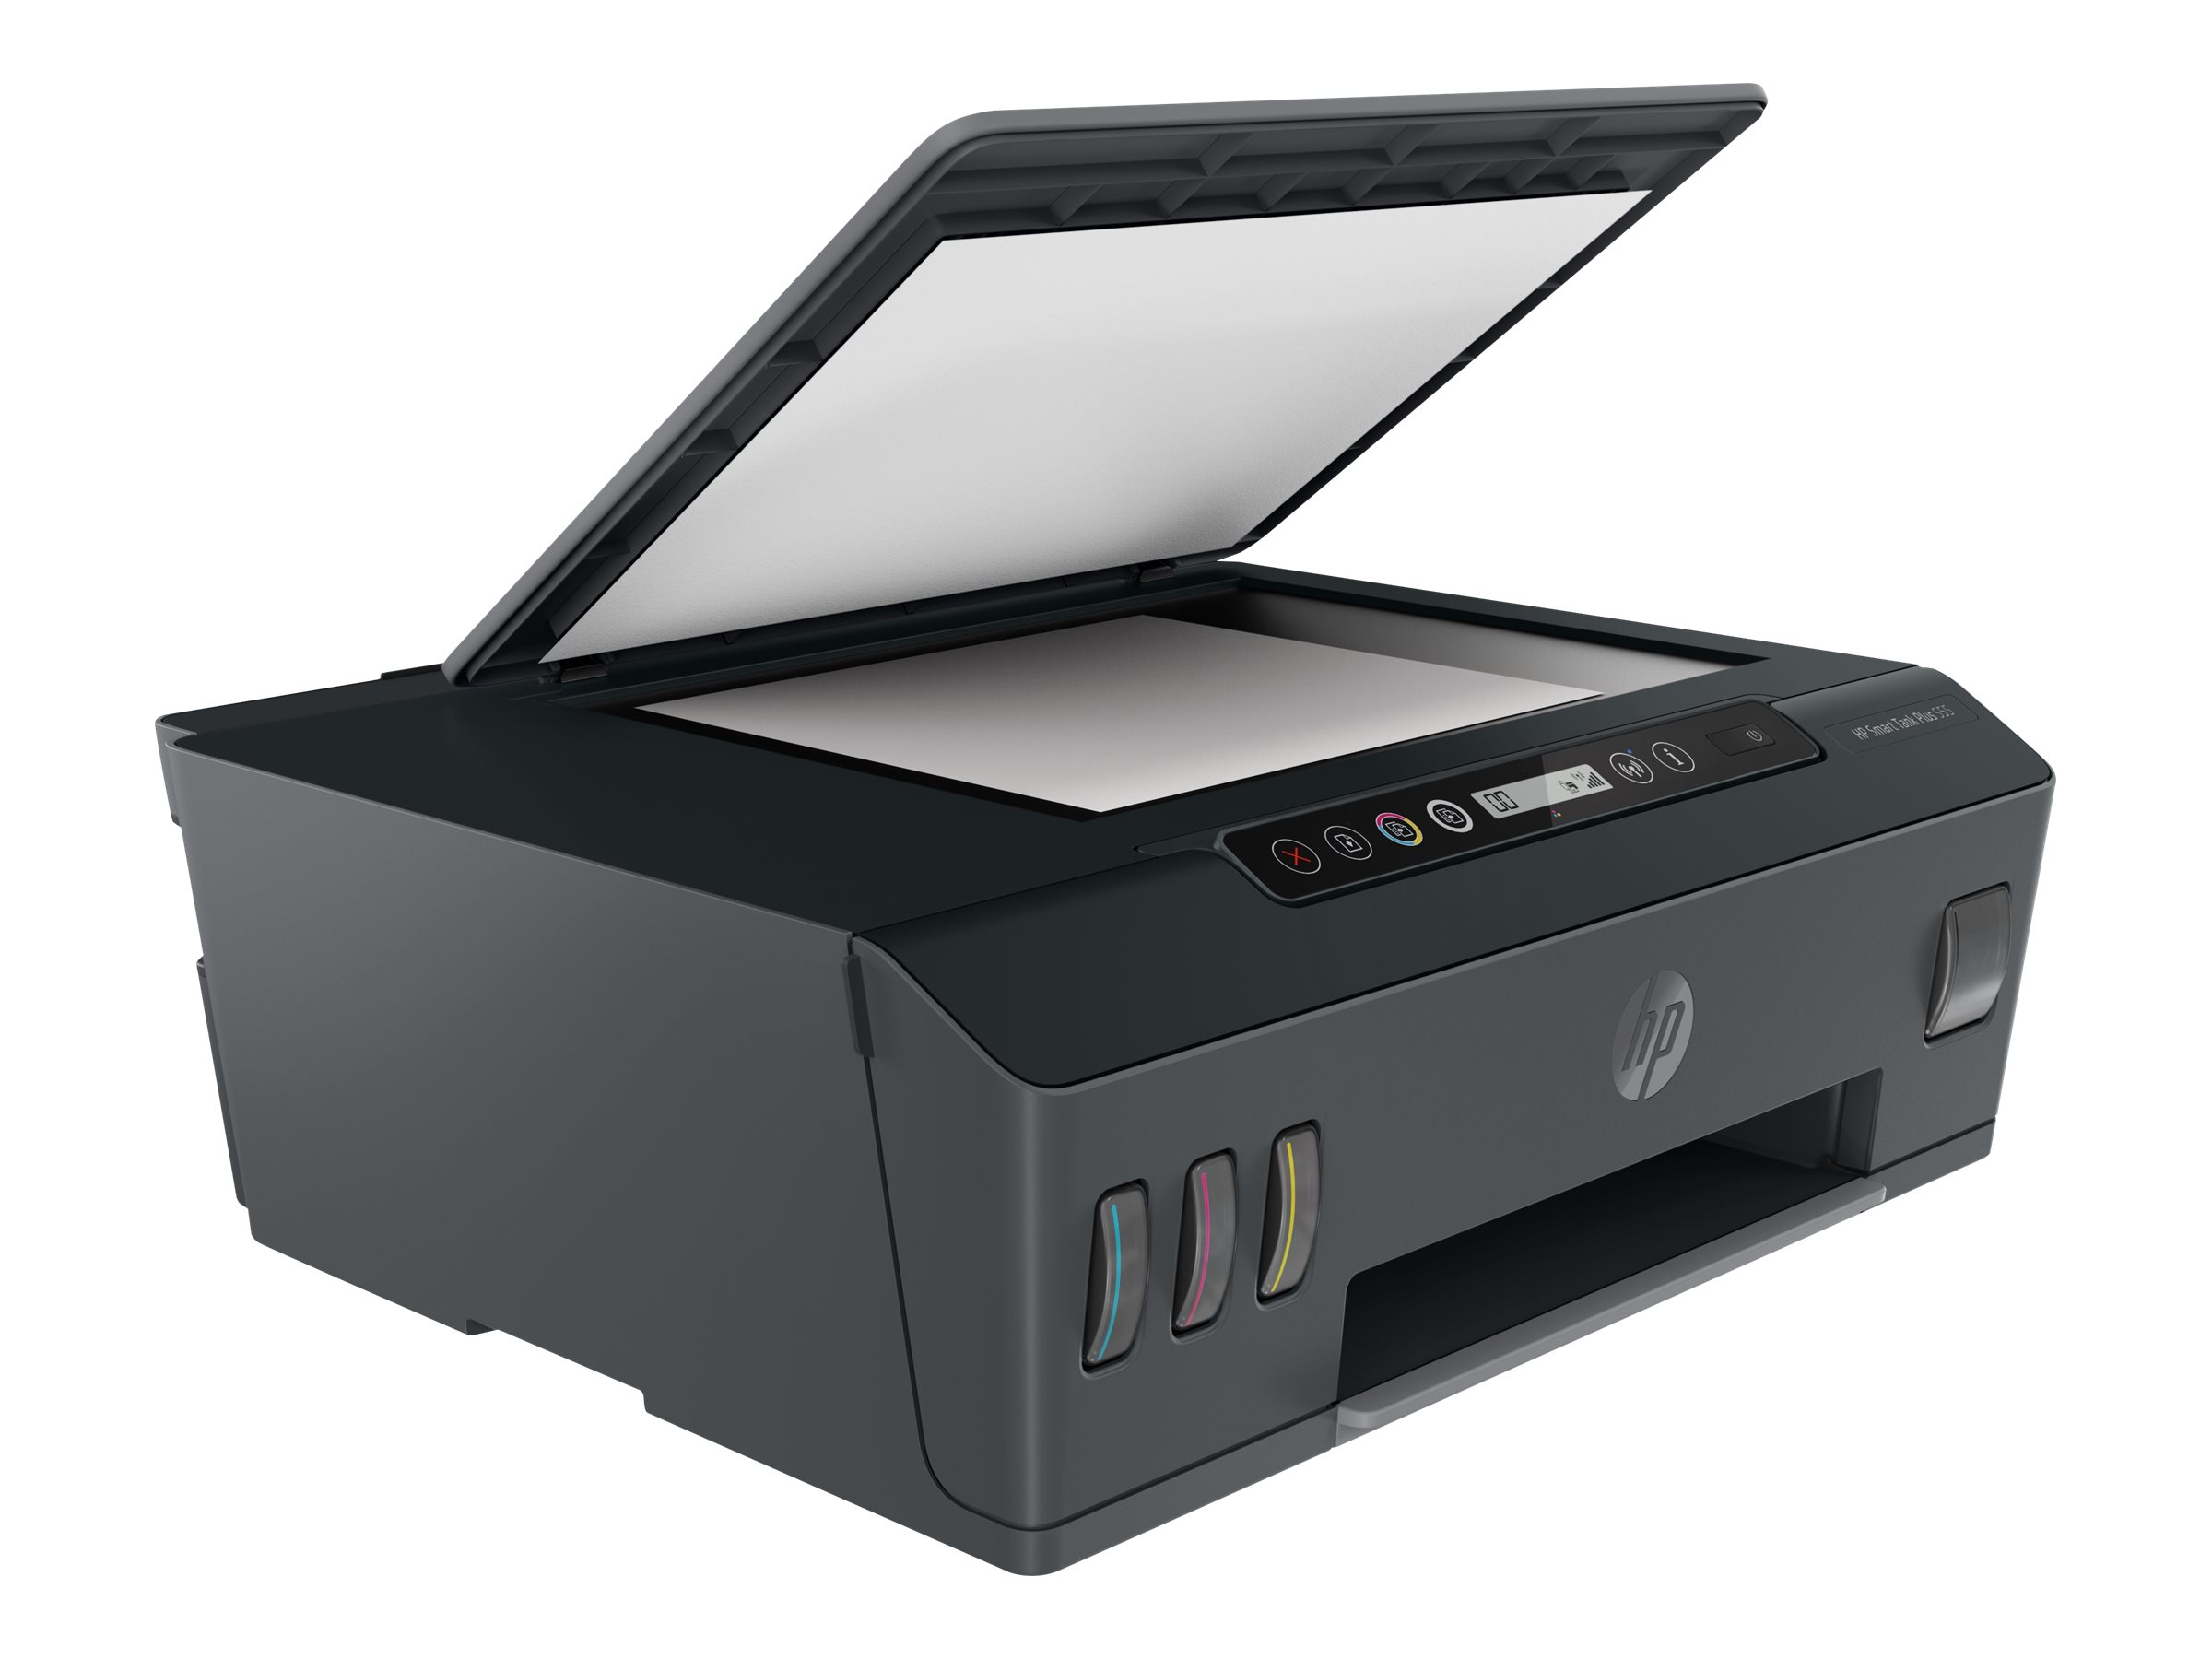 Hp smart tank plus 555 all in one multifunktionsdrucker farbe tintenstrahl refillable legal 216 x 356 mm original 11997706 1tj12a bhc